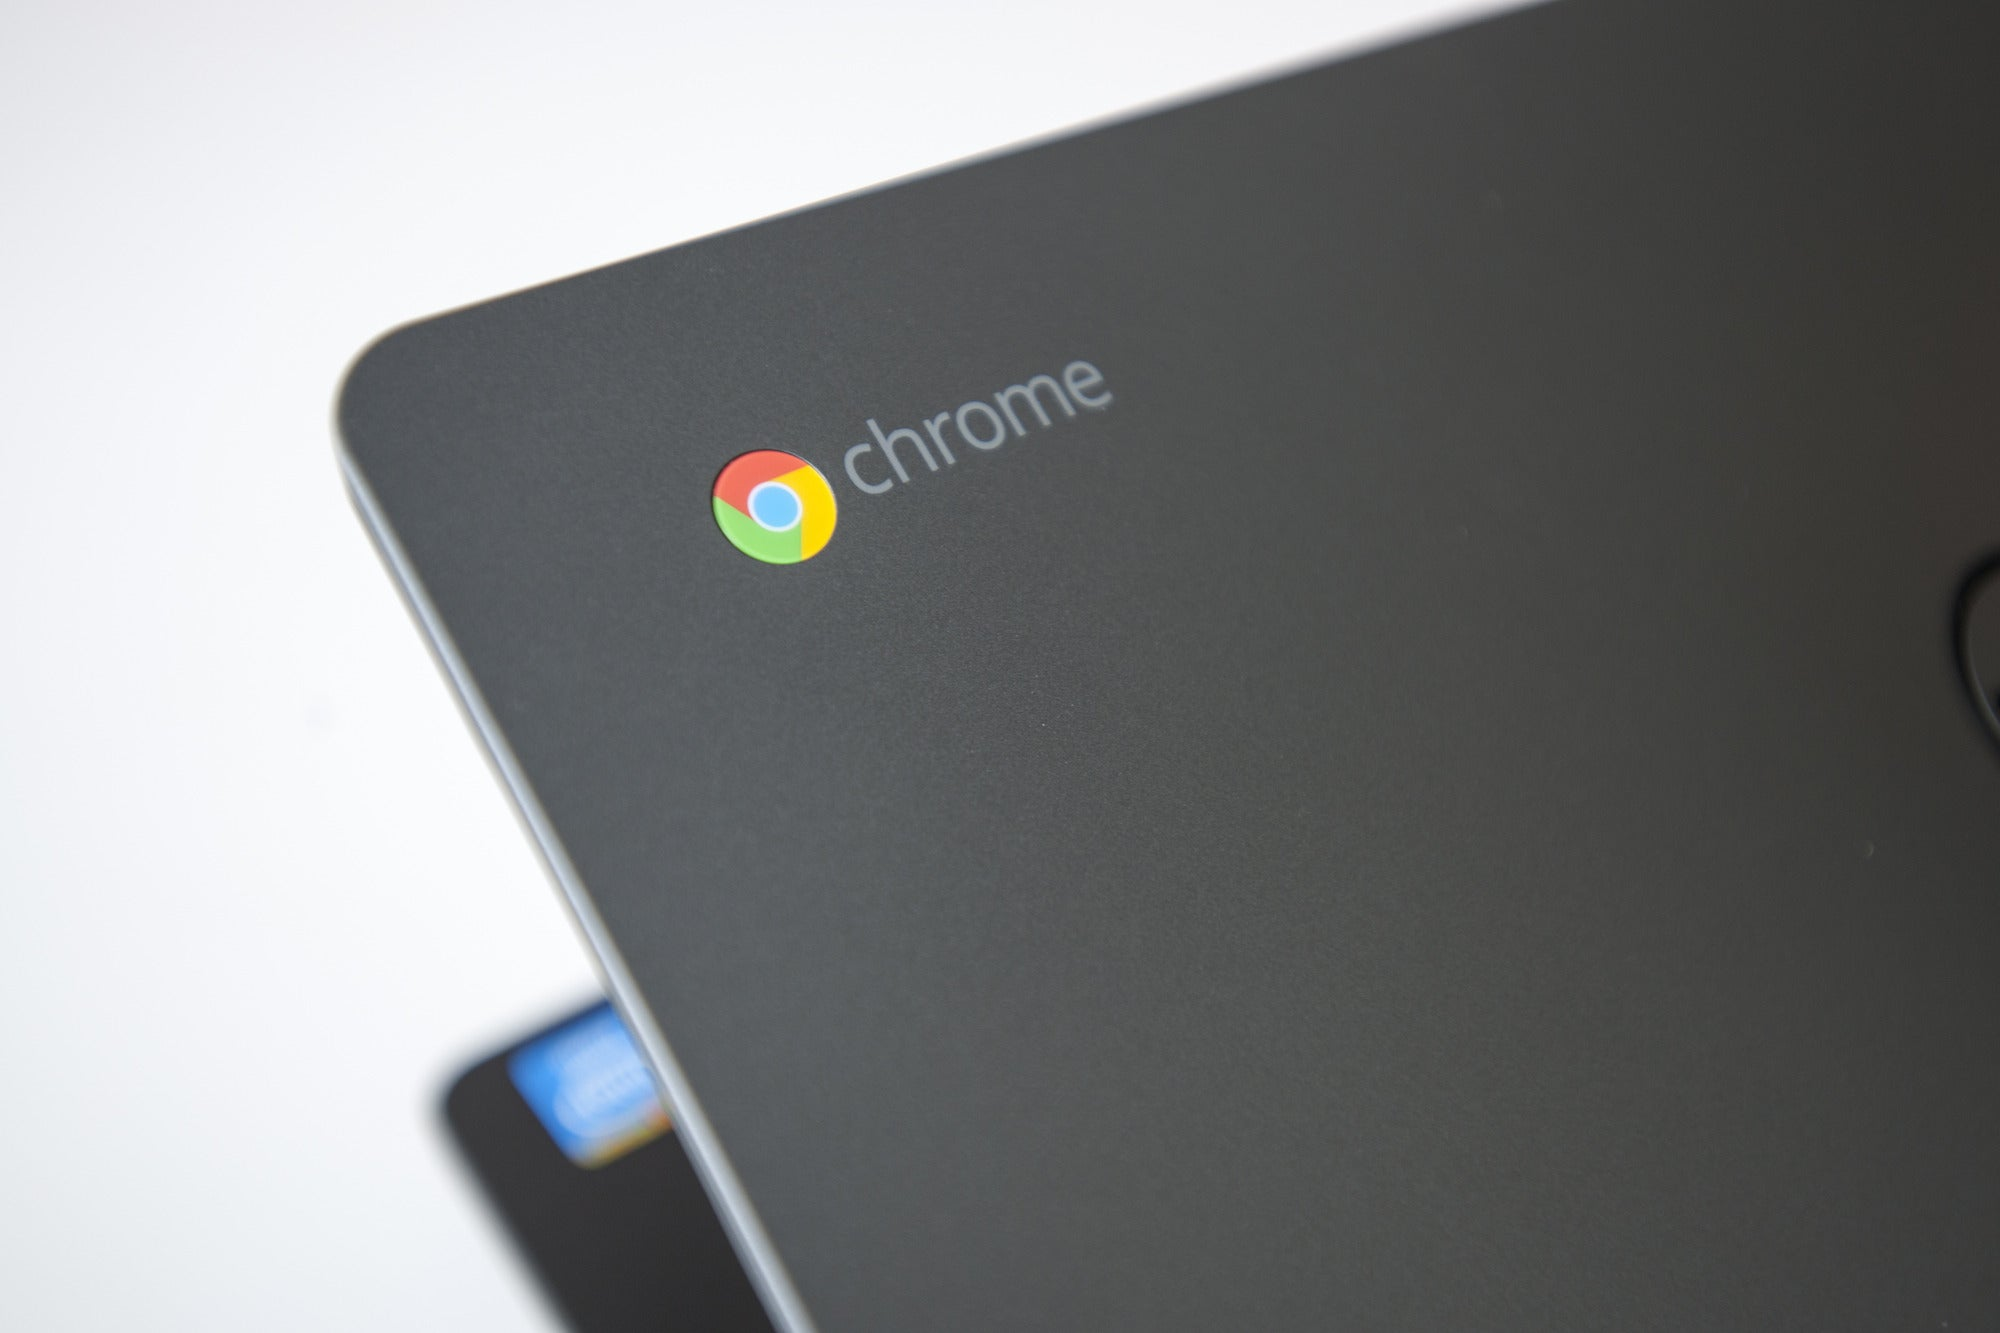 Dell Chromebook 11 review: Basic browser machine keeps up with the